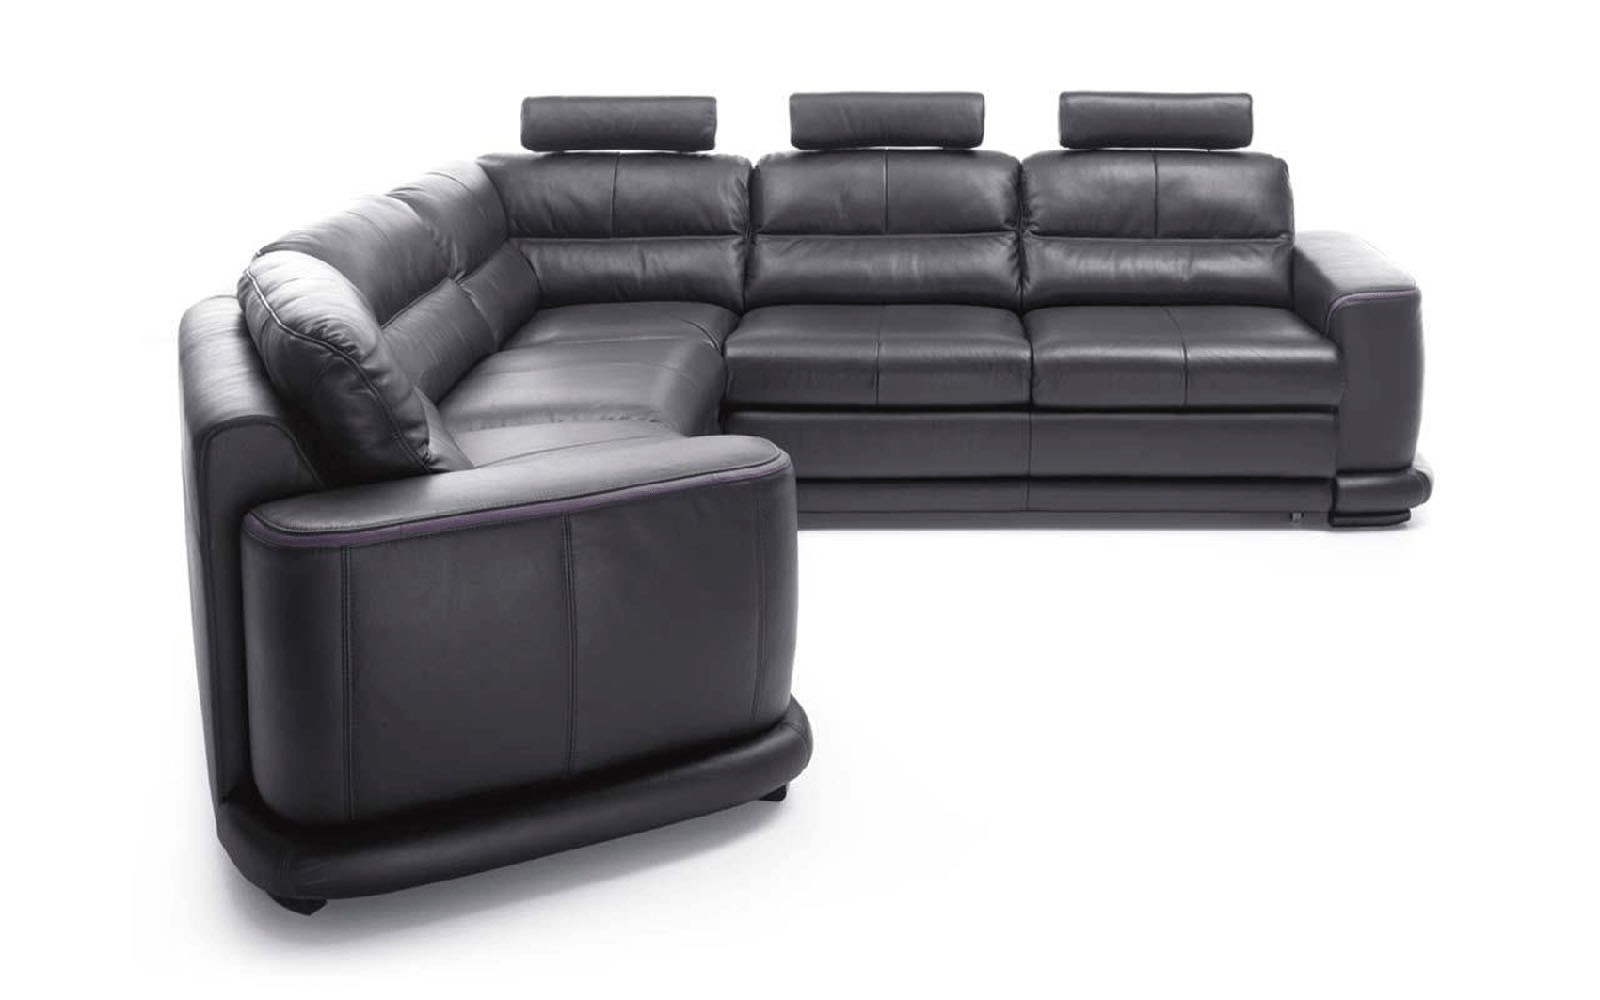 esf camino sectional sofa bed in black full leather